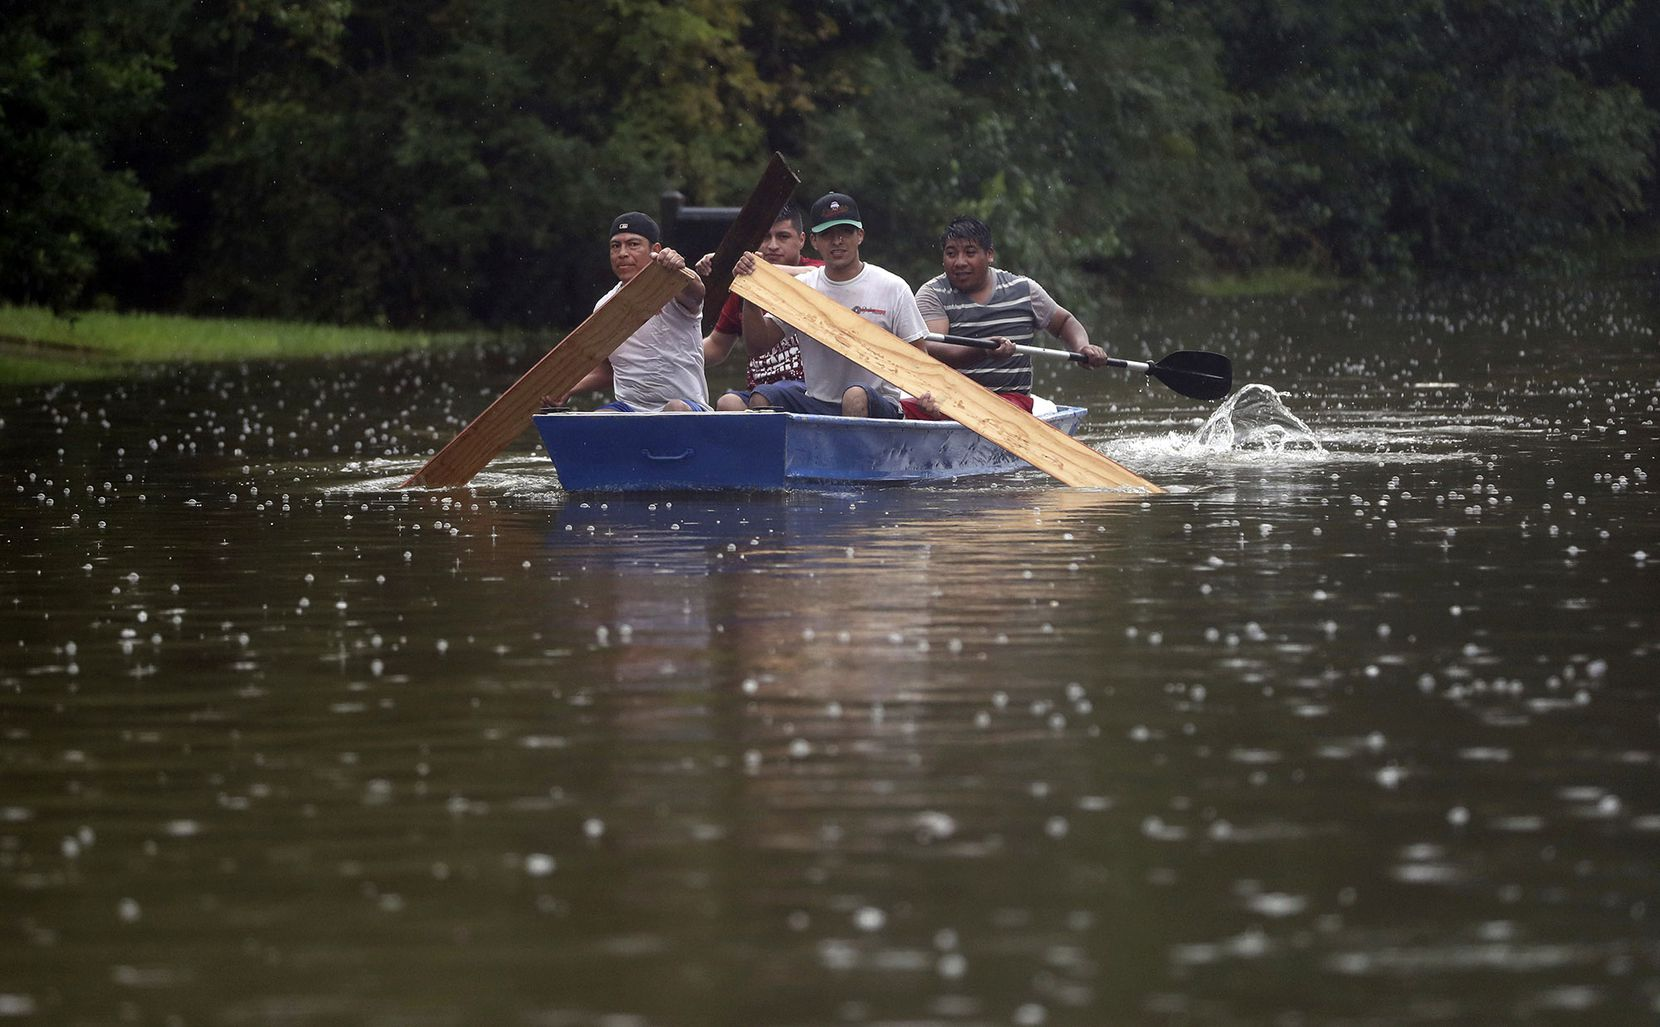 People use plywood to row a boat down Deats Road in Dickinson, Texas, Monday, Aug. 28, 2017, as floodwaters from Tropical Storm Harvey rise. (Kelsey Walling/The Galveston County Daily News via AP)